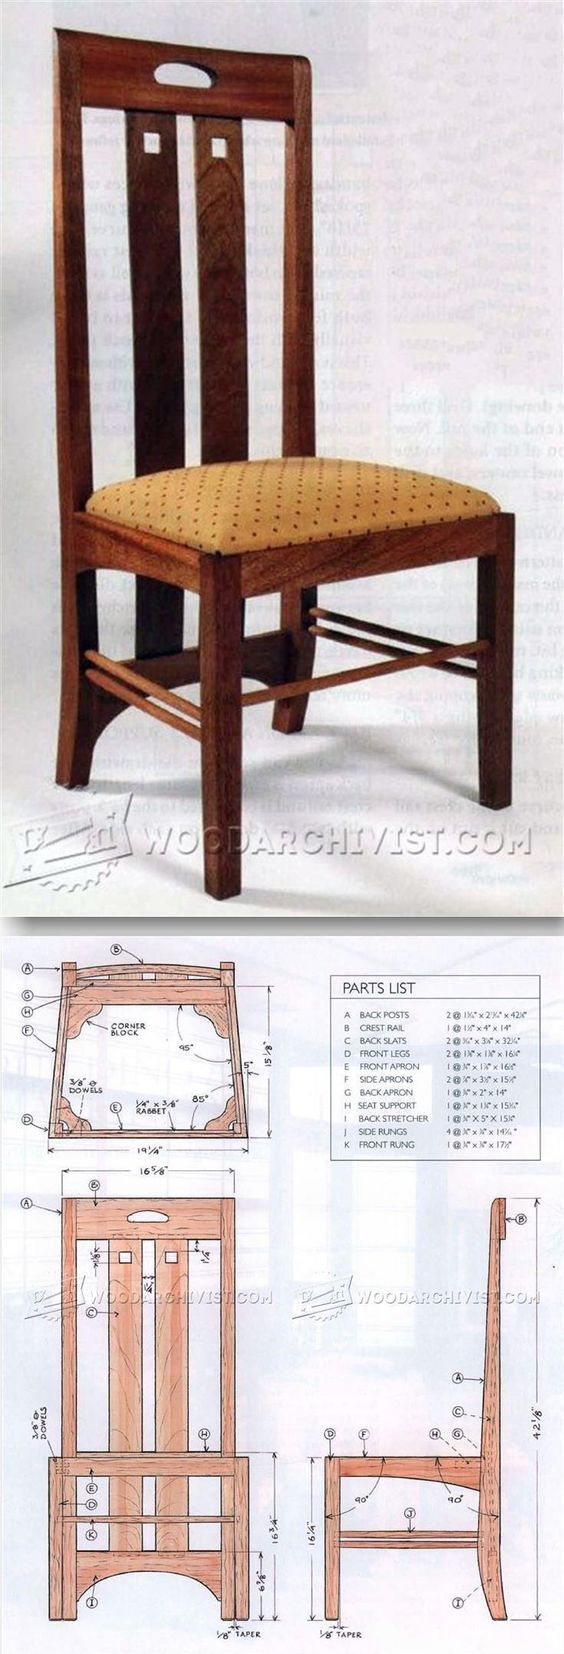 Mackintosh Chair Plans - Furniture Plans and Projects   WoodArchivist.com